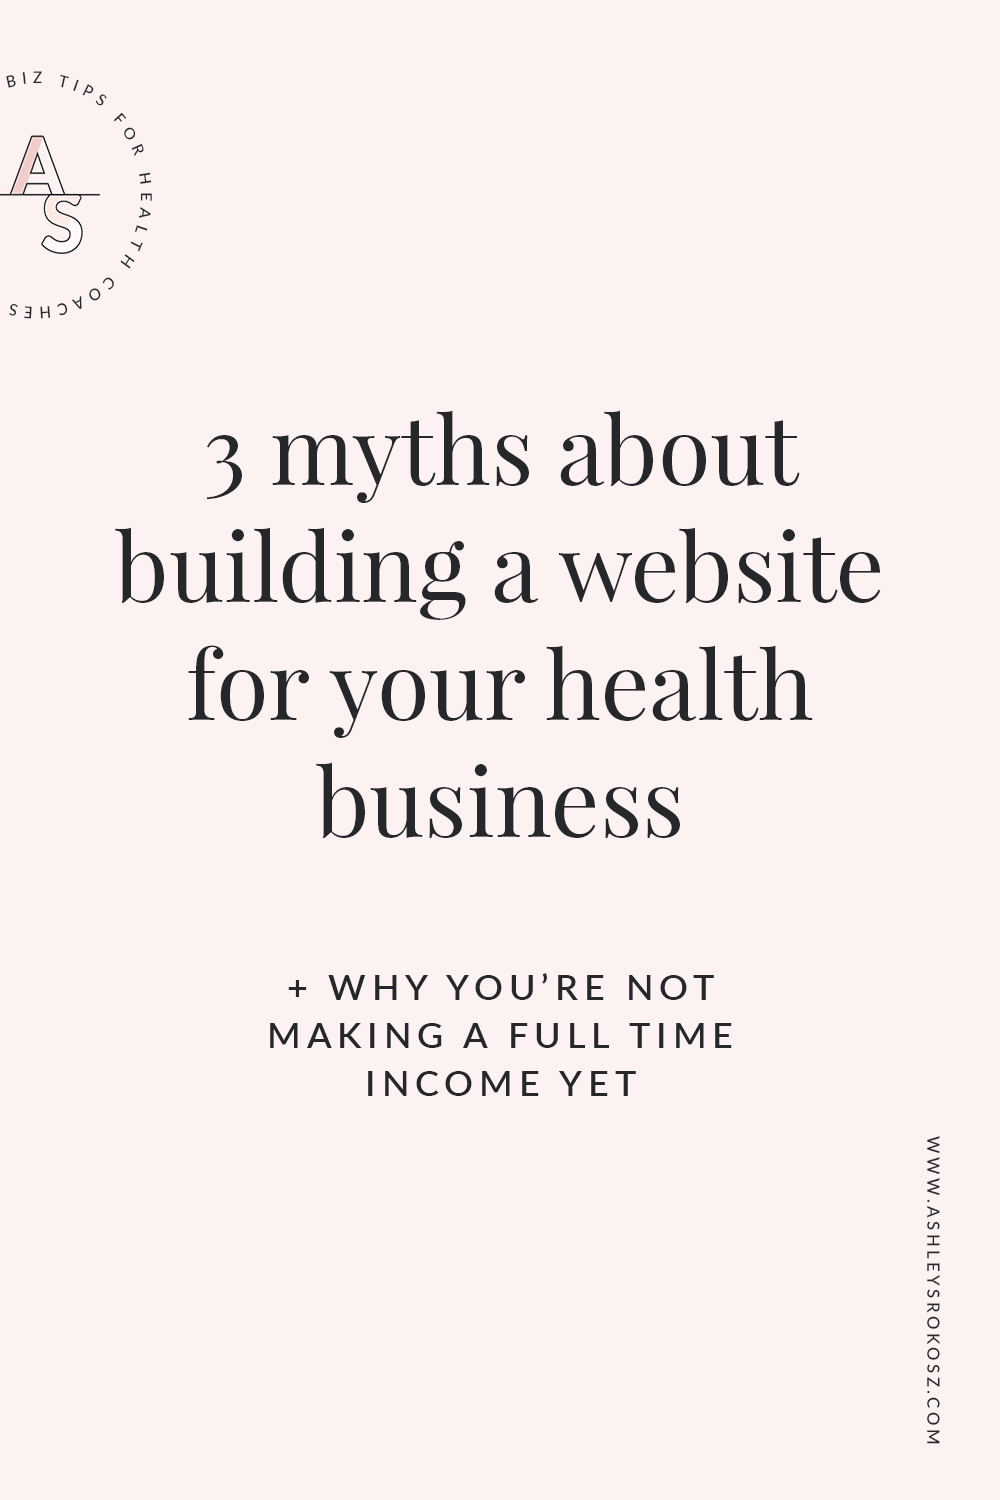 3 myths about building a website for health business | Ashley Srokosz | Nutrition business... #Blogging #Branding #BrandingTips #BusinessTips #OnlineBusiness